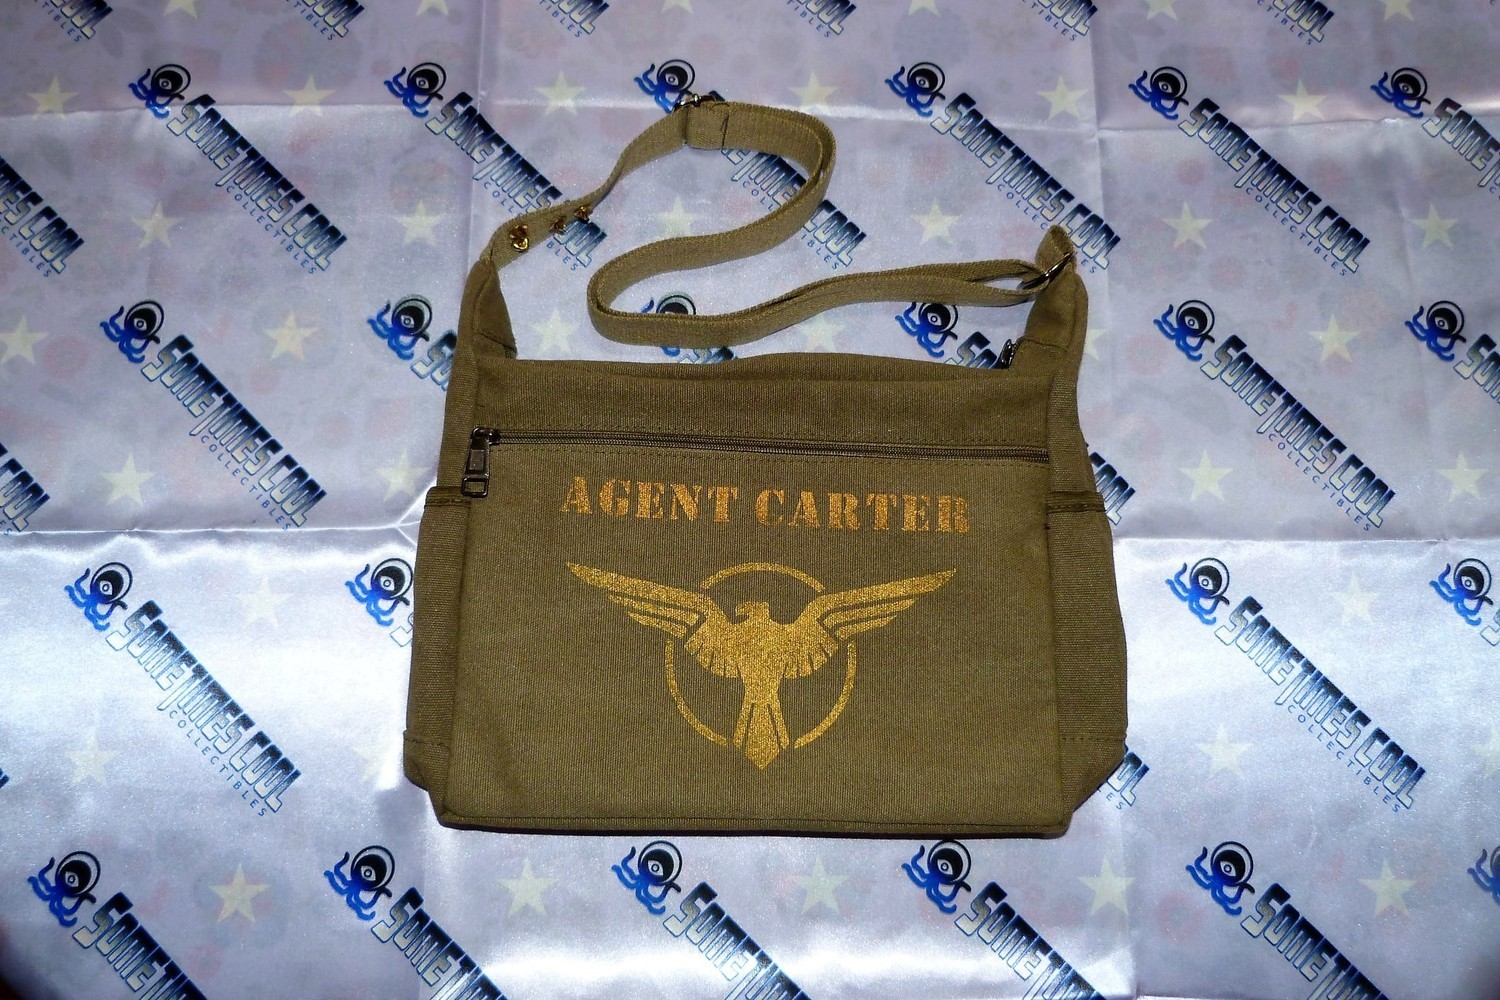 Agent Carter Tablet Shoulder Bag